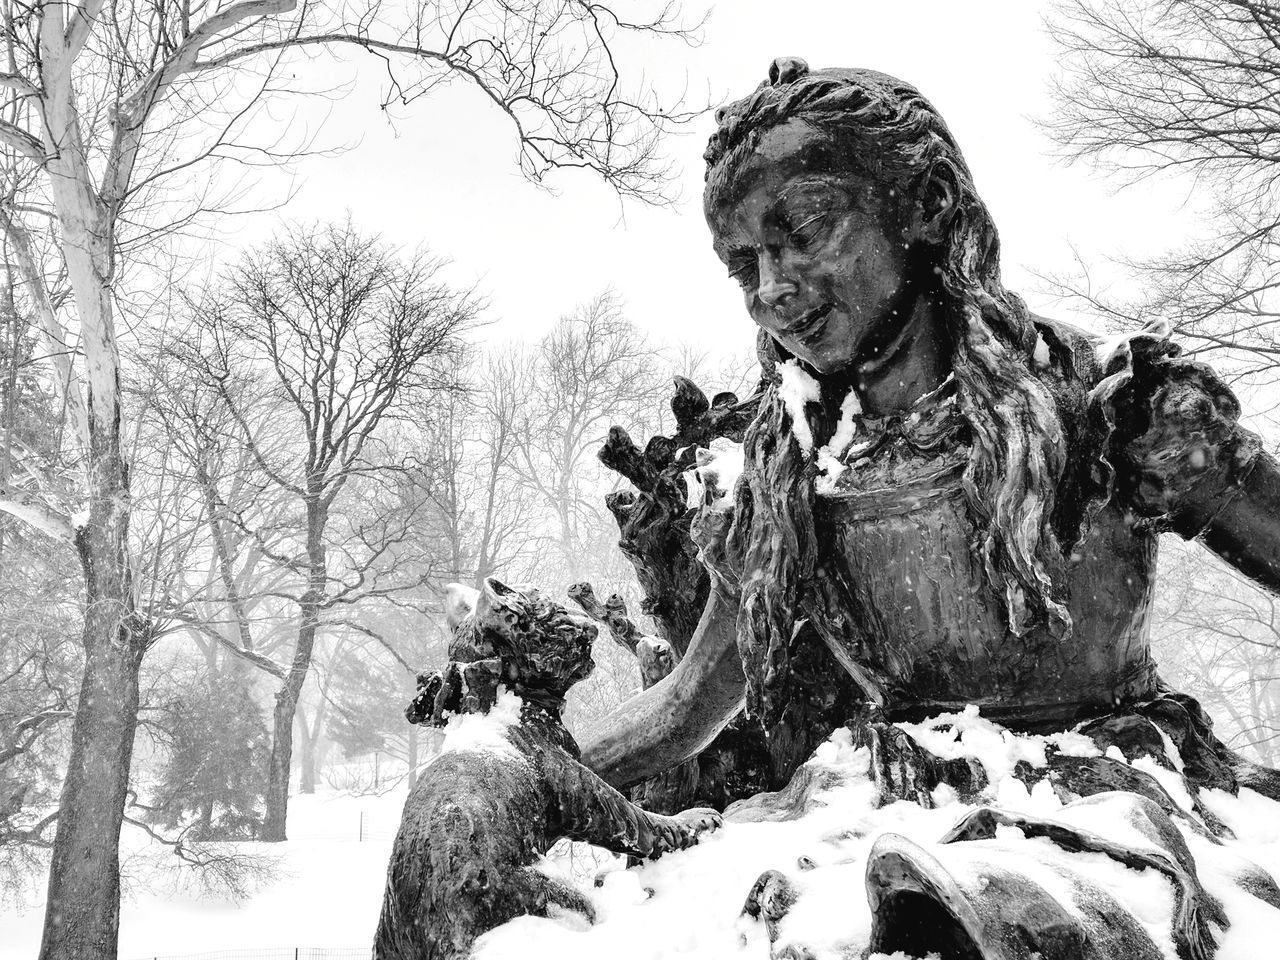 Alice in Winter Wonderland Aliceinwonderland Alice Statue Central Park Central Park - NYC Central Park, New York Snowcapped Snow Snowing New York City